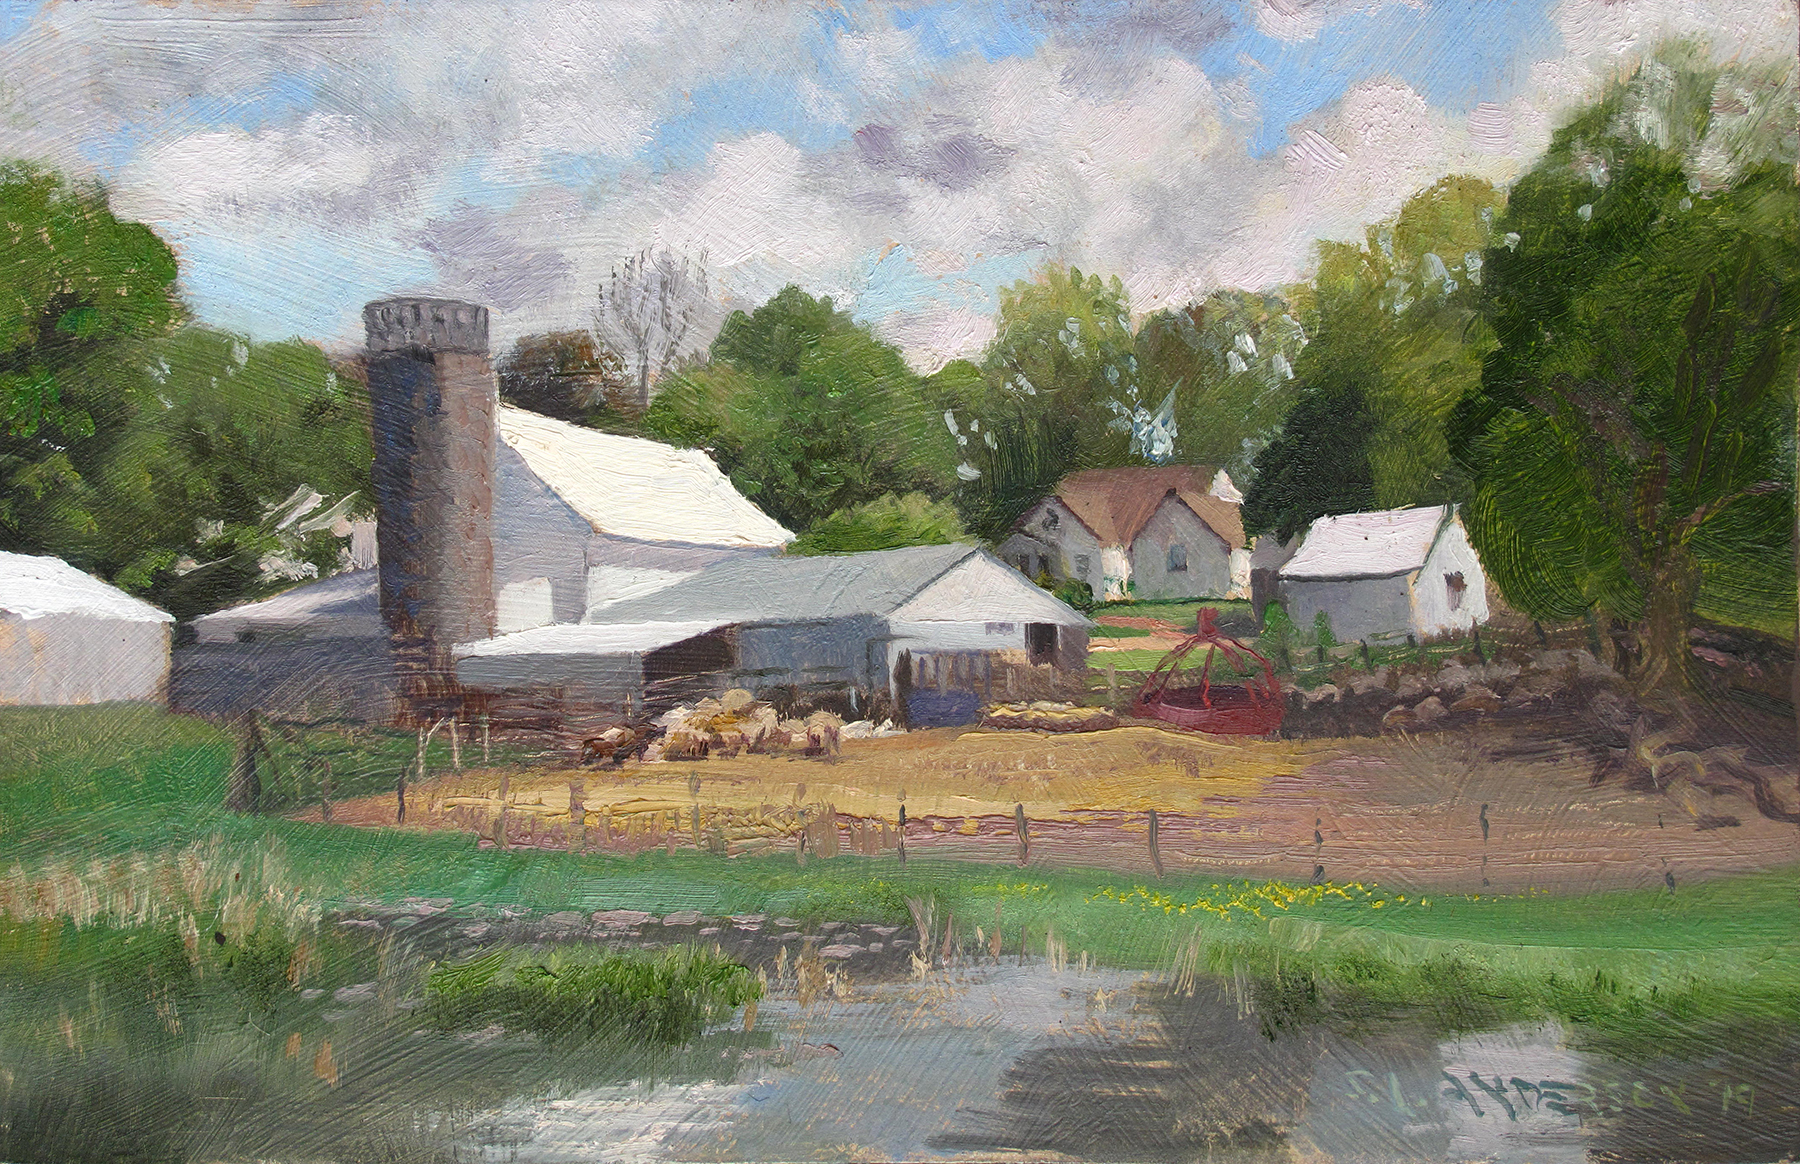 Sheep Farm  7 x 11 oil on panel Painted on location in San Francisco County, Minnesota.